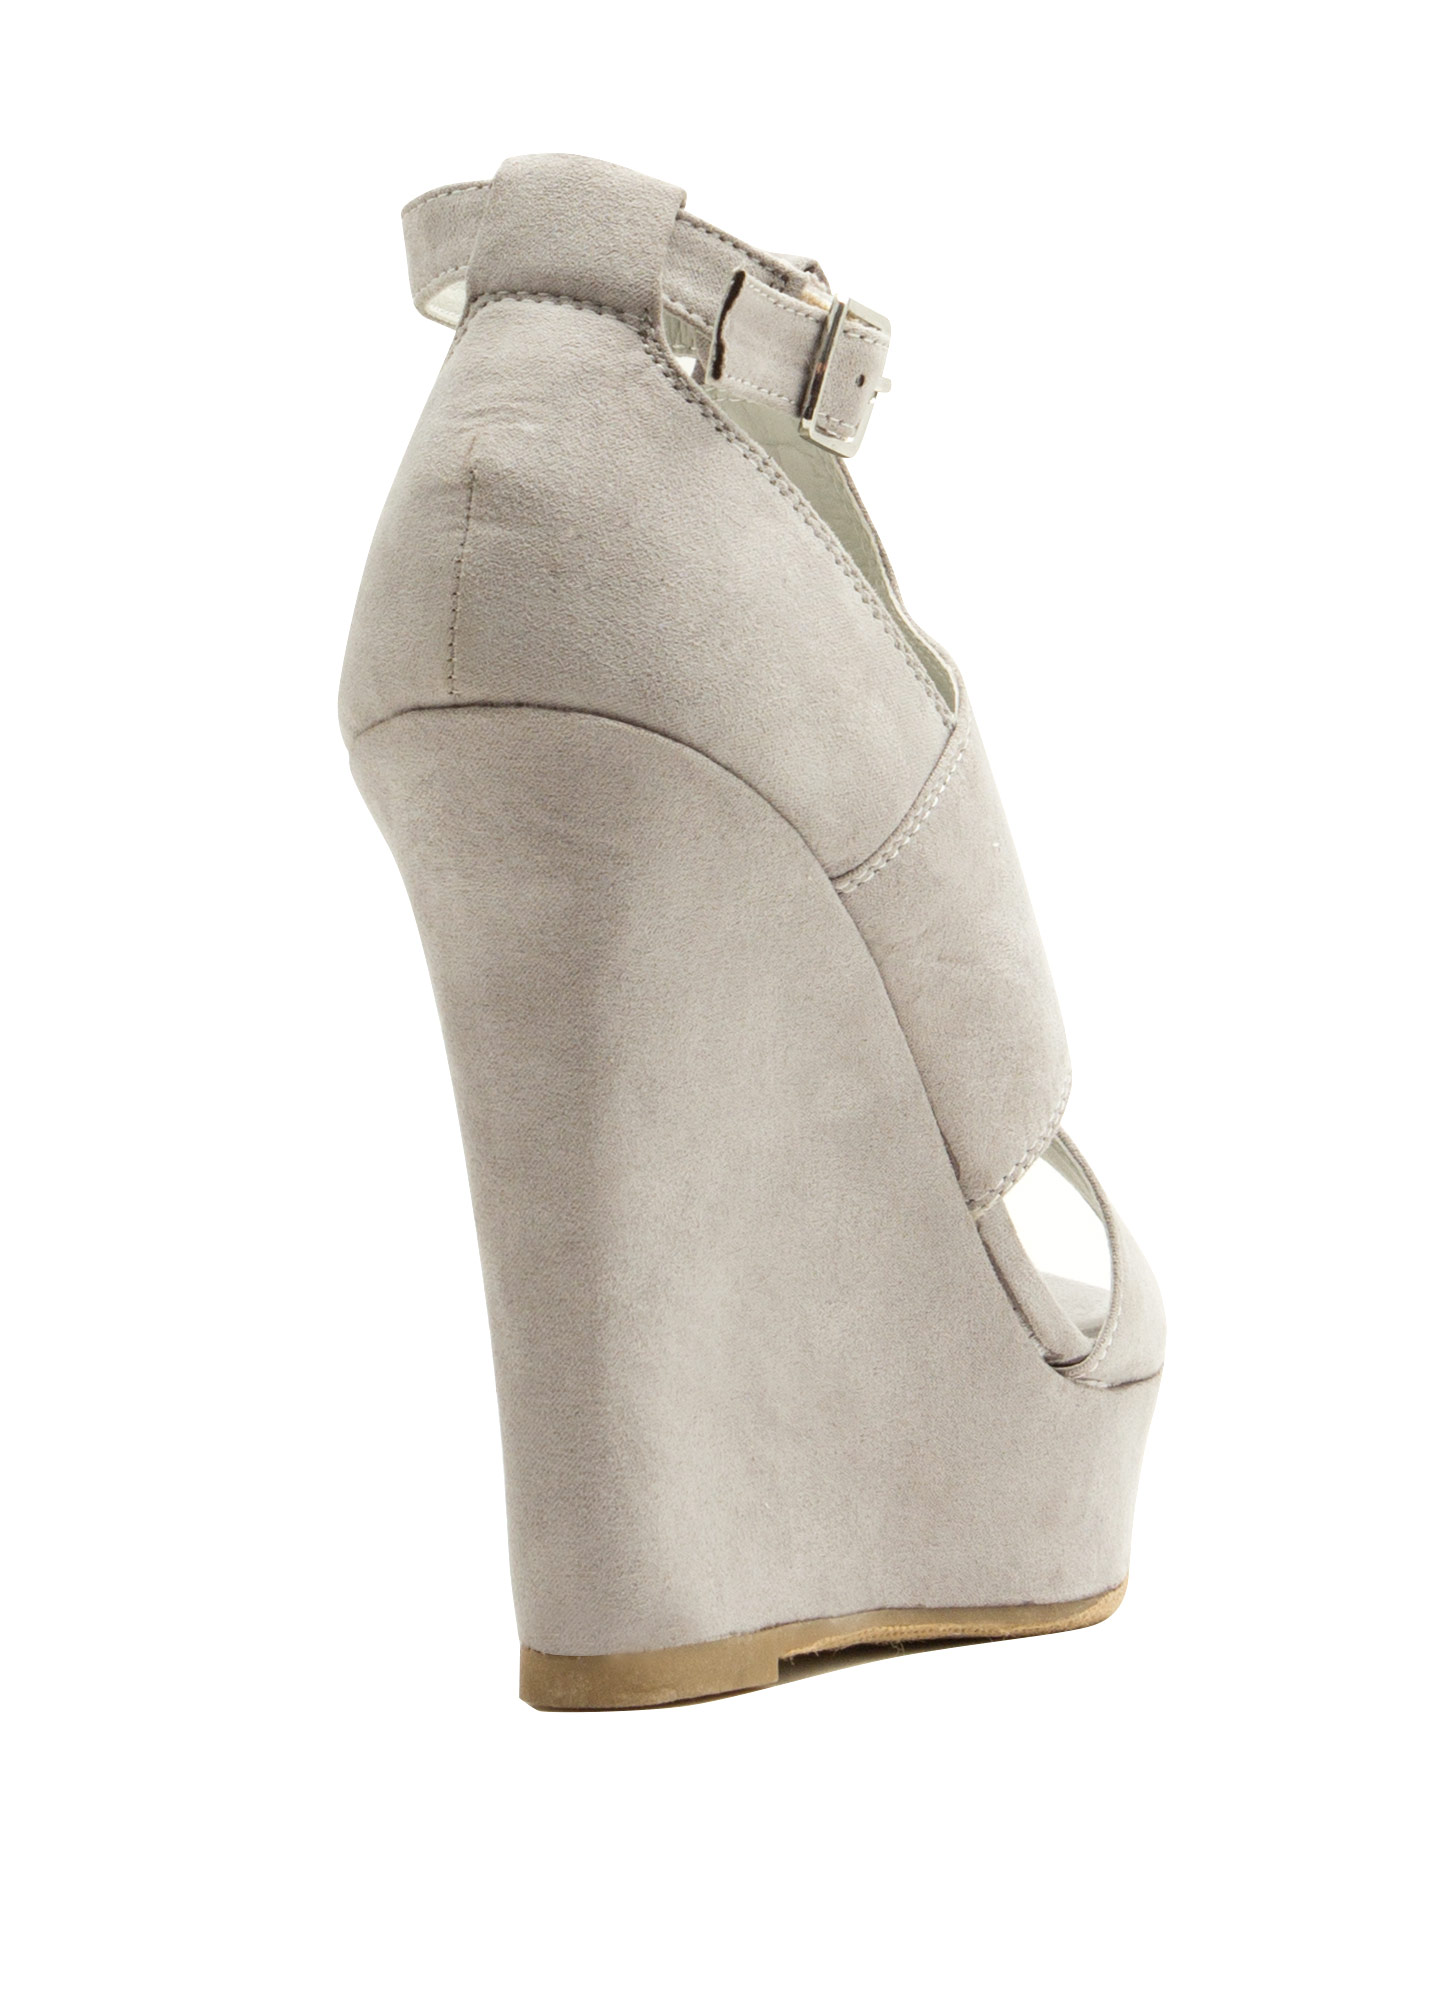 Cut-Out Paneled Peep-Toe Wedges LTGREY